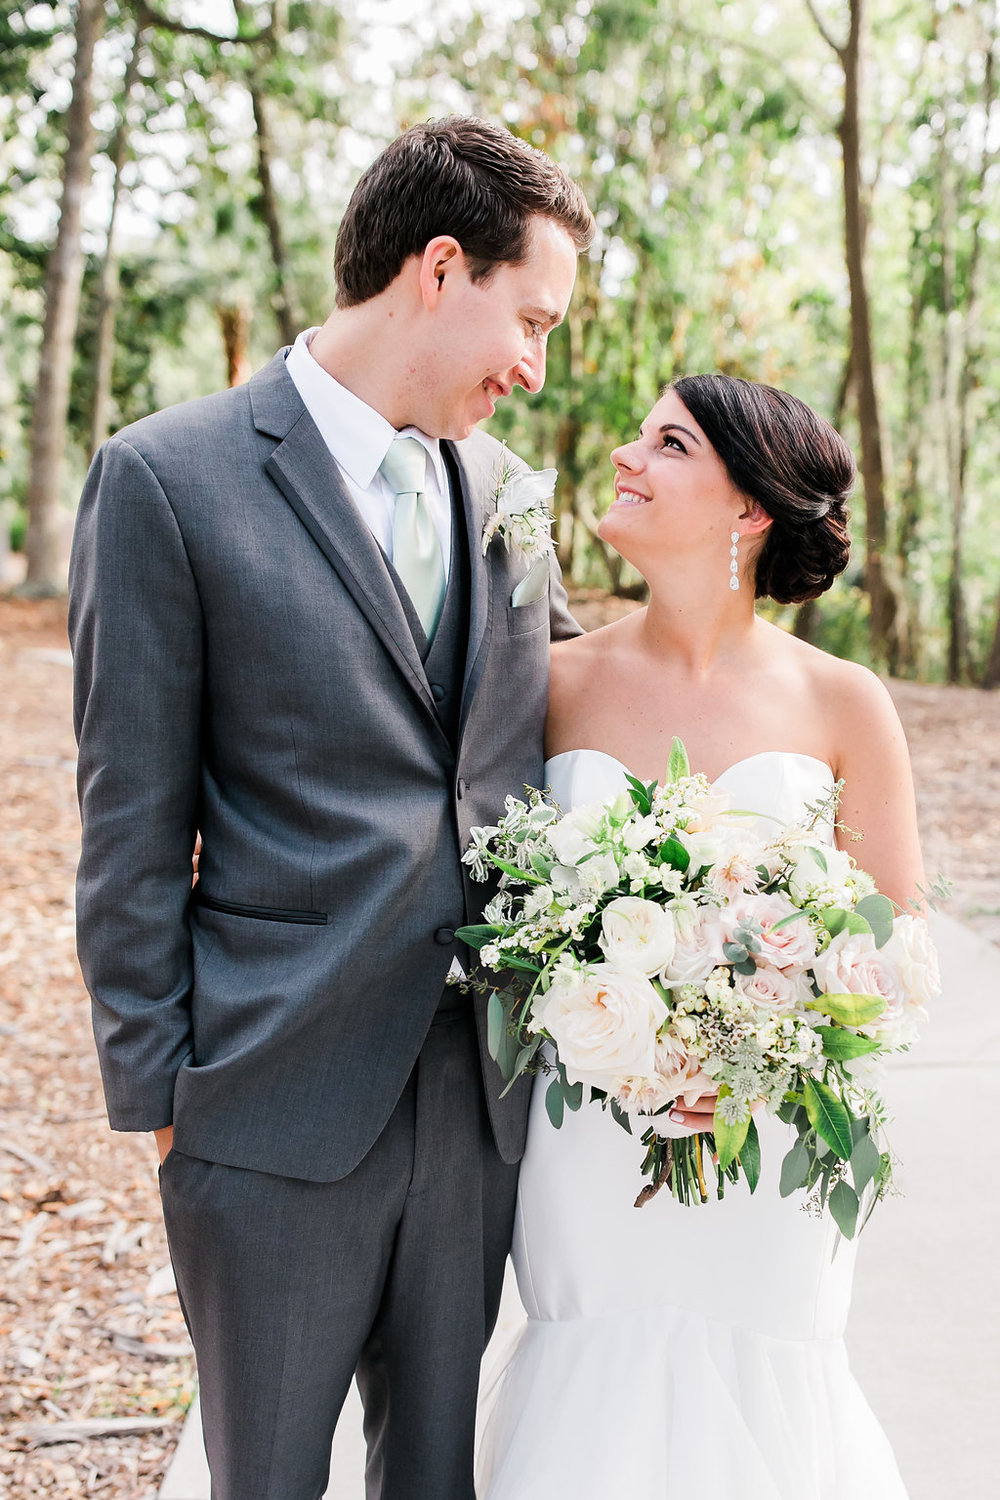 ivory-and-beau-bridal-boutique-jb-marie-photography-hannah-and-daniel-westin-hilton-head-island-wedding-hilton-head-island-florist-16.jpg